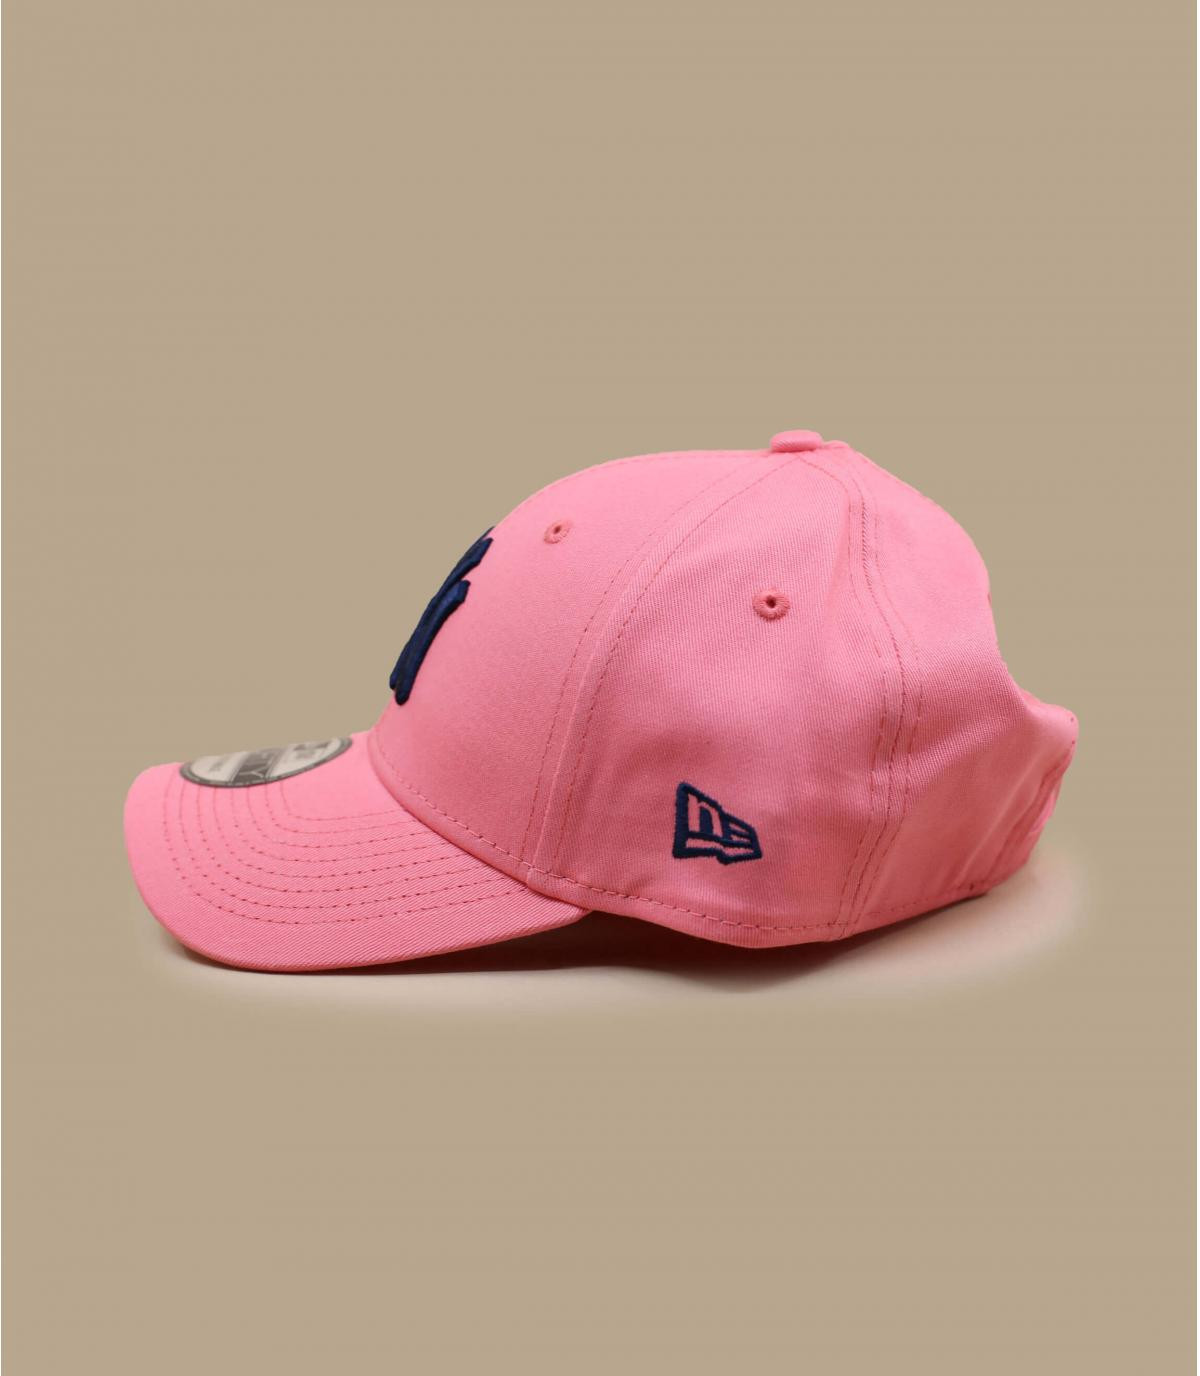 Details League Ess NY 940 pink lift navy - afbeeling 2